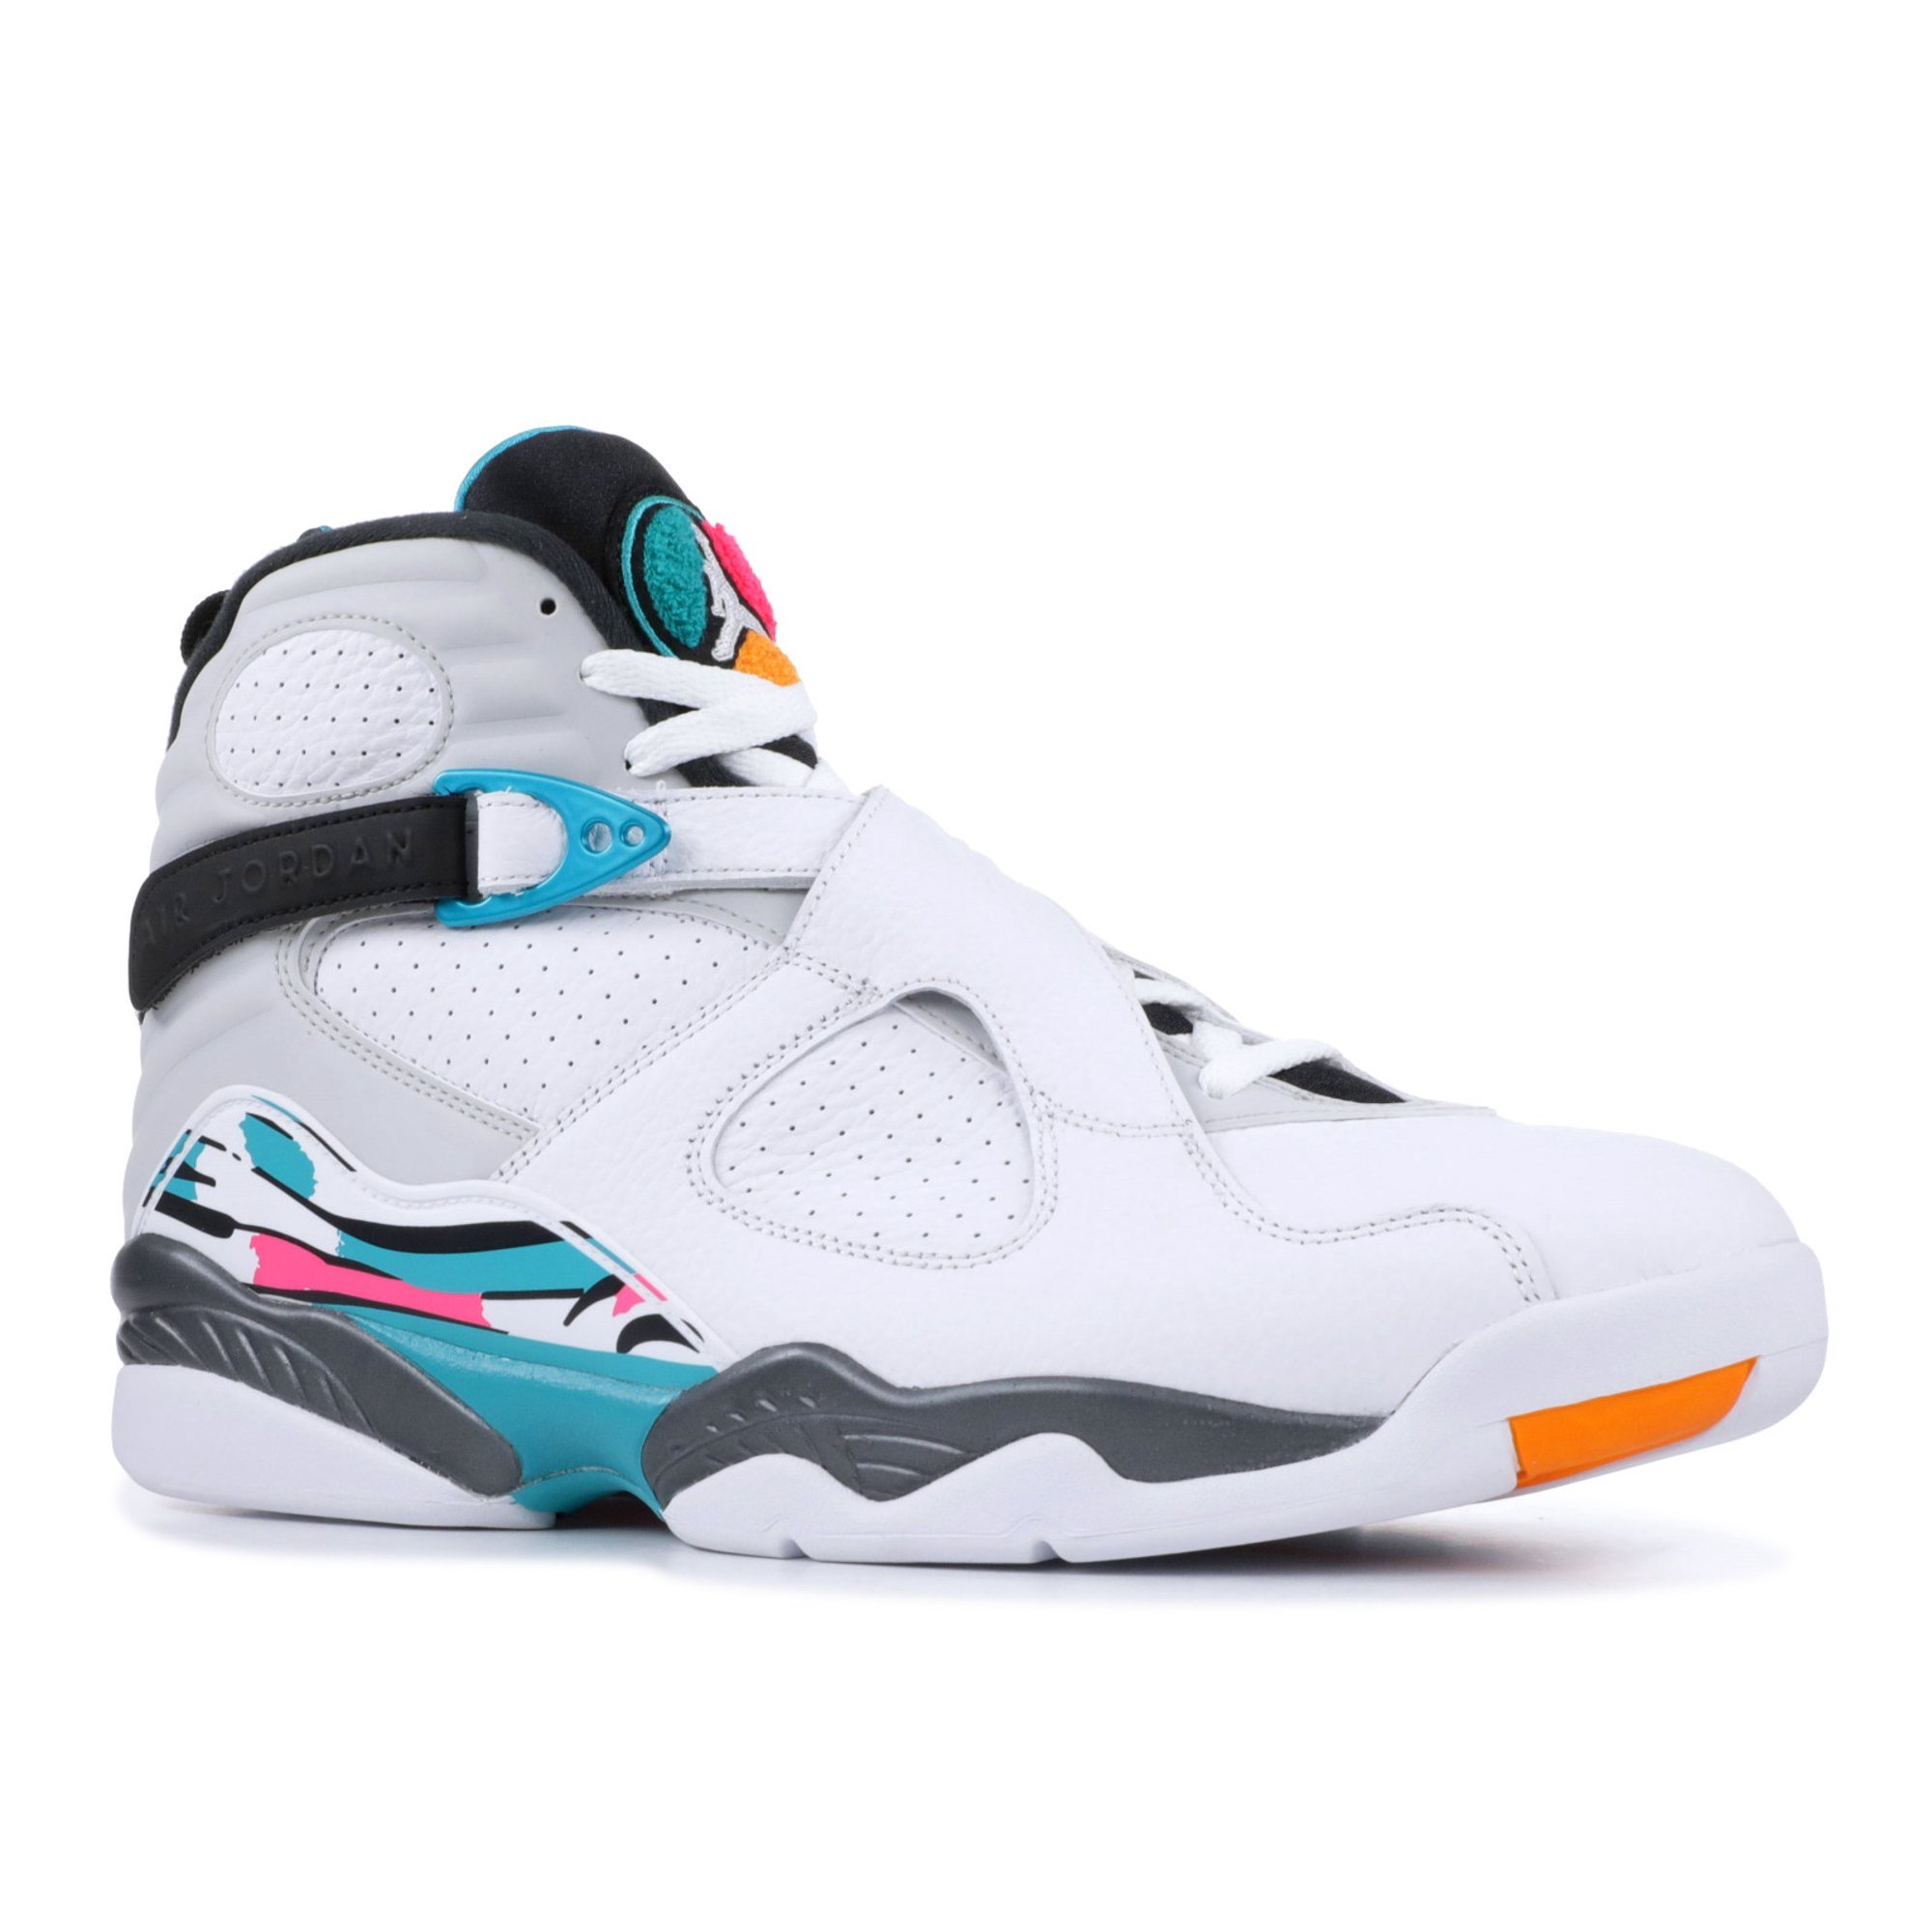 bas prix 7021b 2551e Air Jordan - Men - Air Jordan 8 Retro 'South Beach' - 305381-113 - Size 8